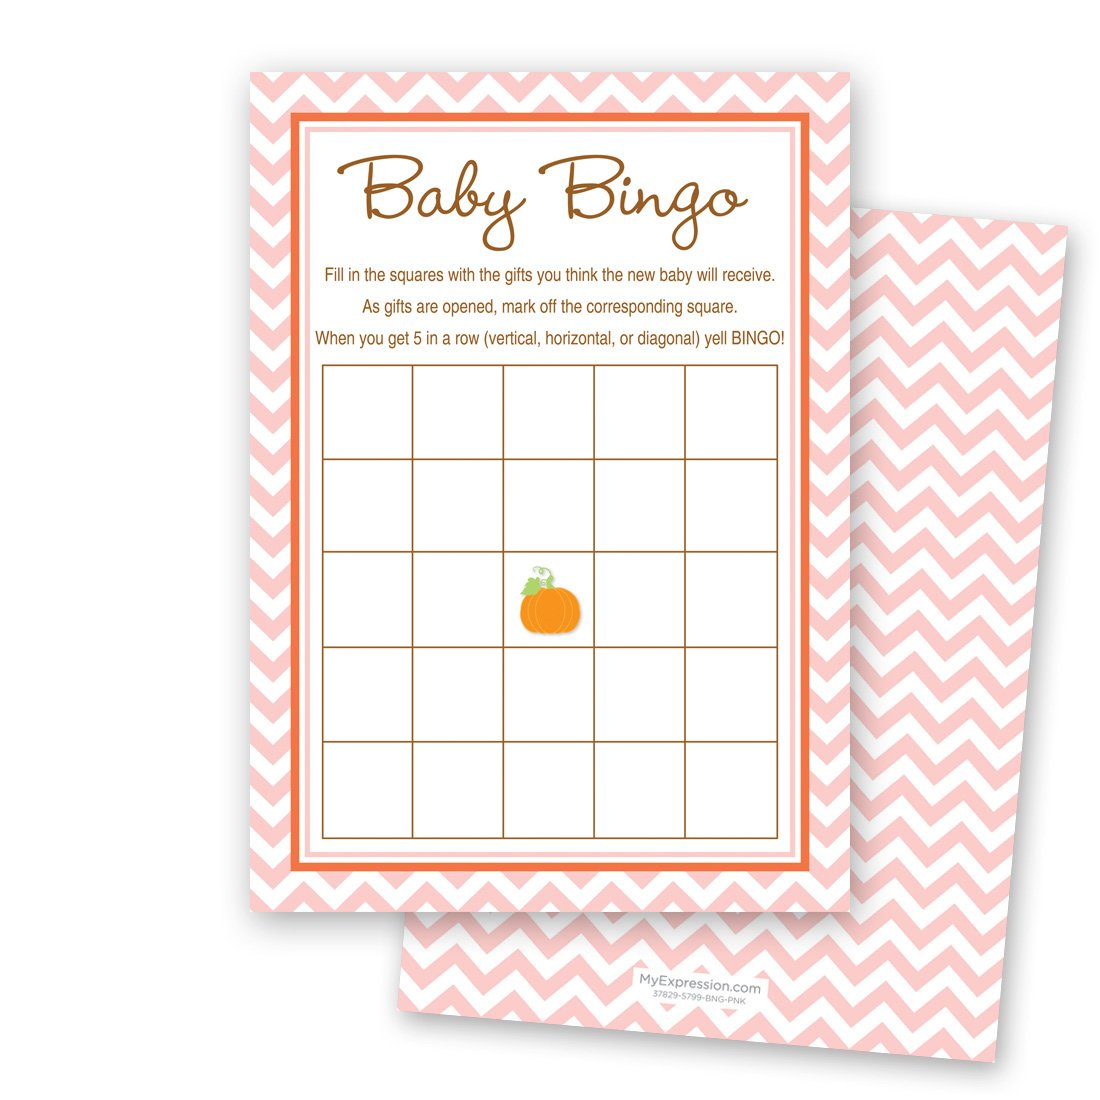 MyExpression.com 24 Cnt Little Pumpkin Pink Chevron Baby Shower Bingo Cards